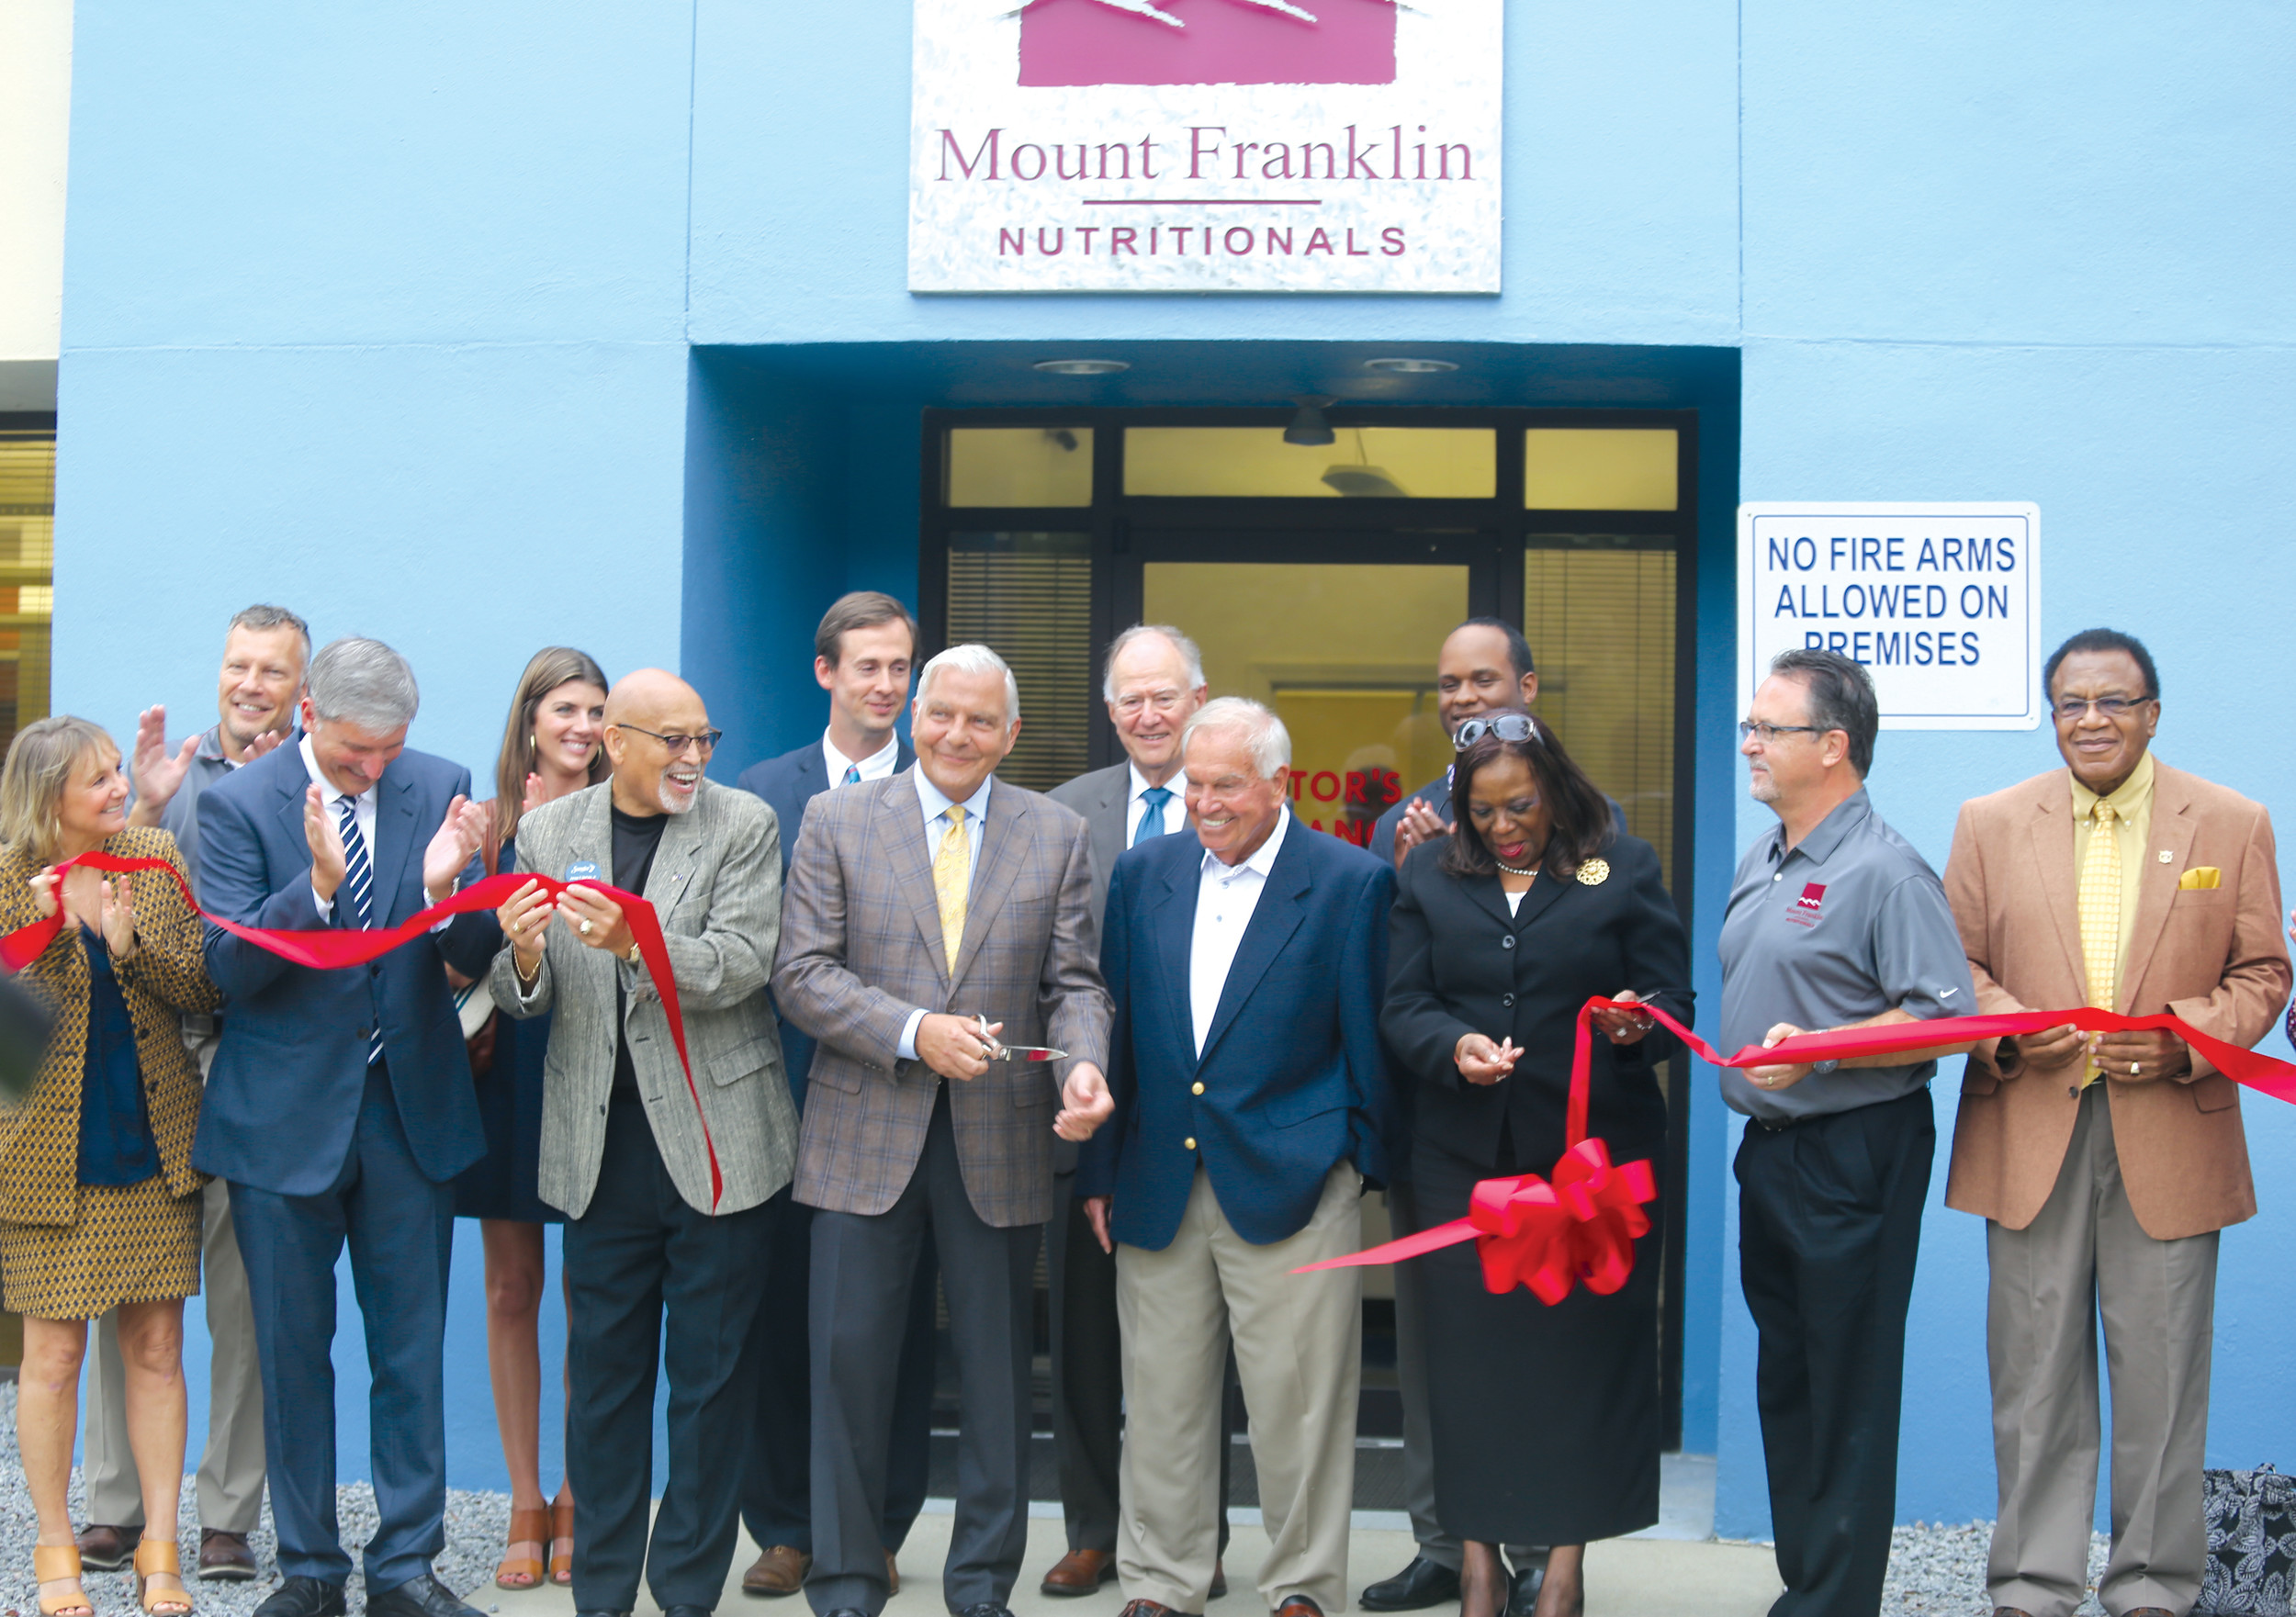 Mount Franklin Foods President and CEO Gary Ricco, with scissors in hand, cuts the ribbon Wednesday outside Mount Franklin Nutritionals' facility in Live Oak Industrial Park. Former New York Yankees great and Sumterite Bobby Richardson looks on at Ricco's left, along with other local officials.